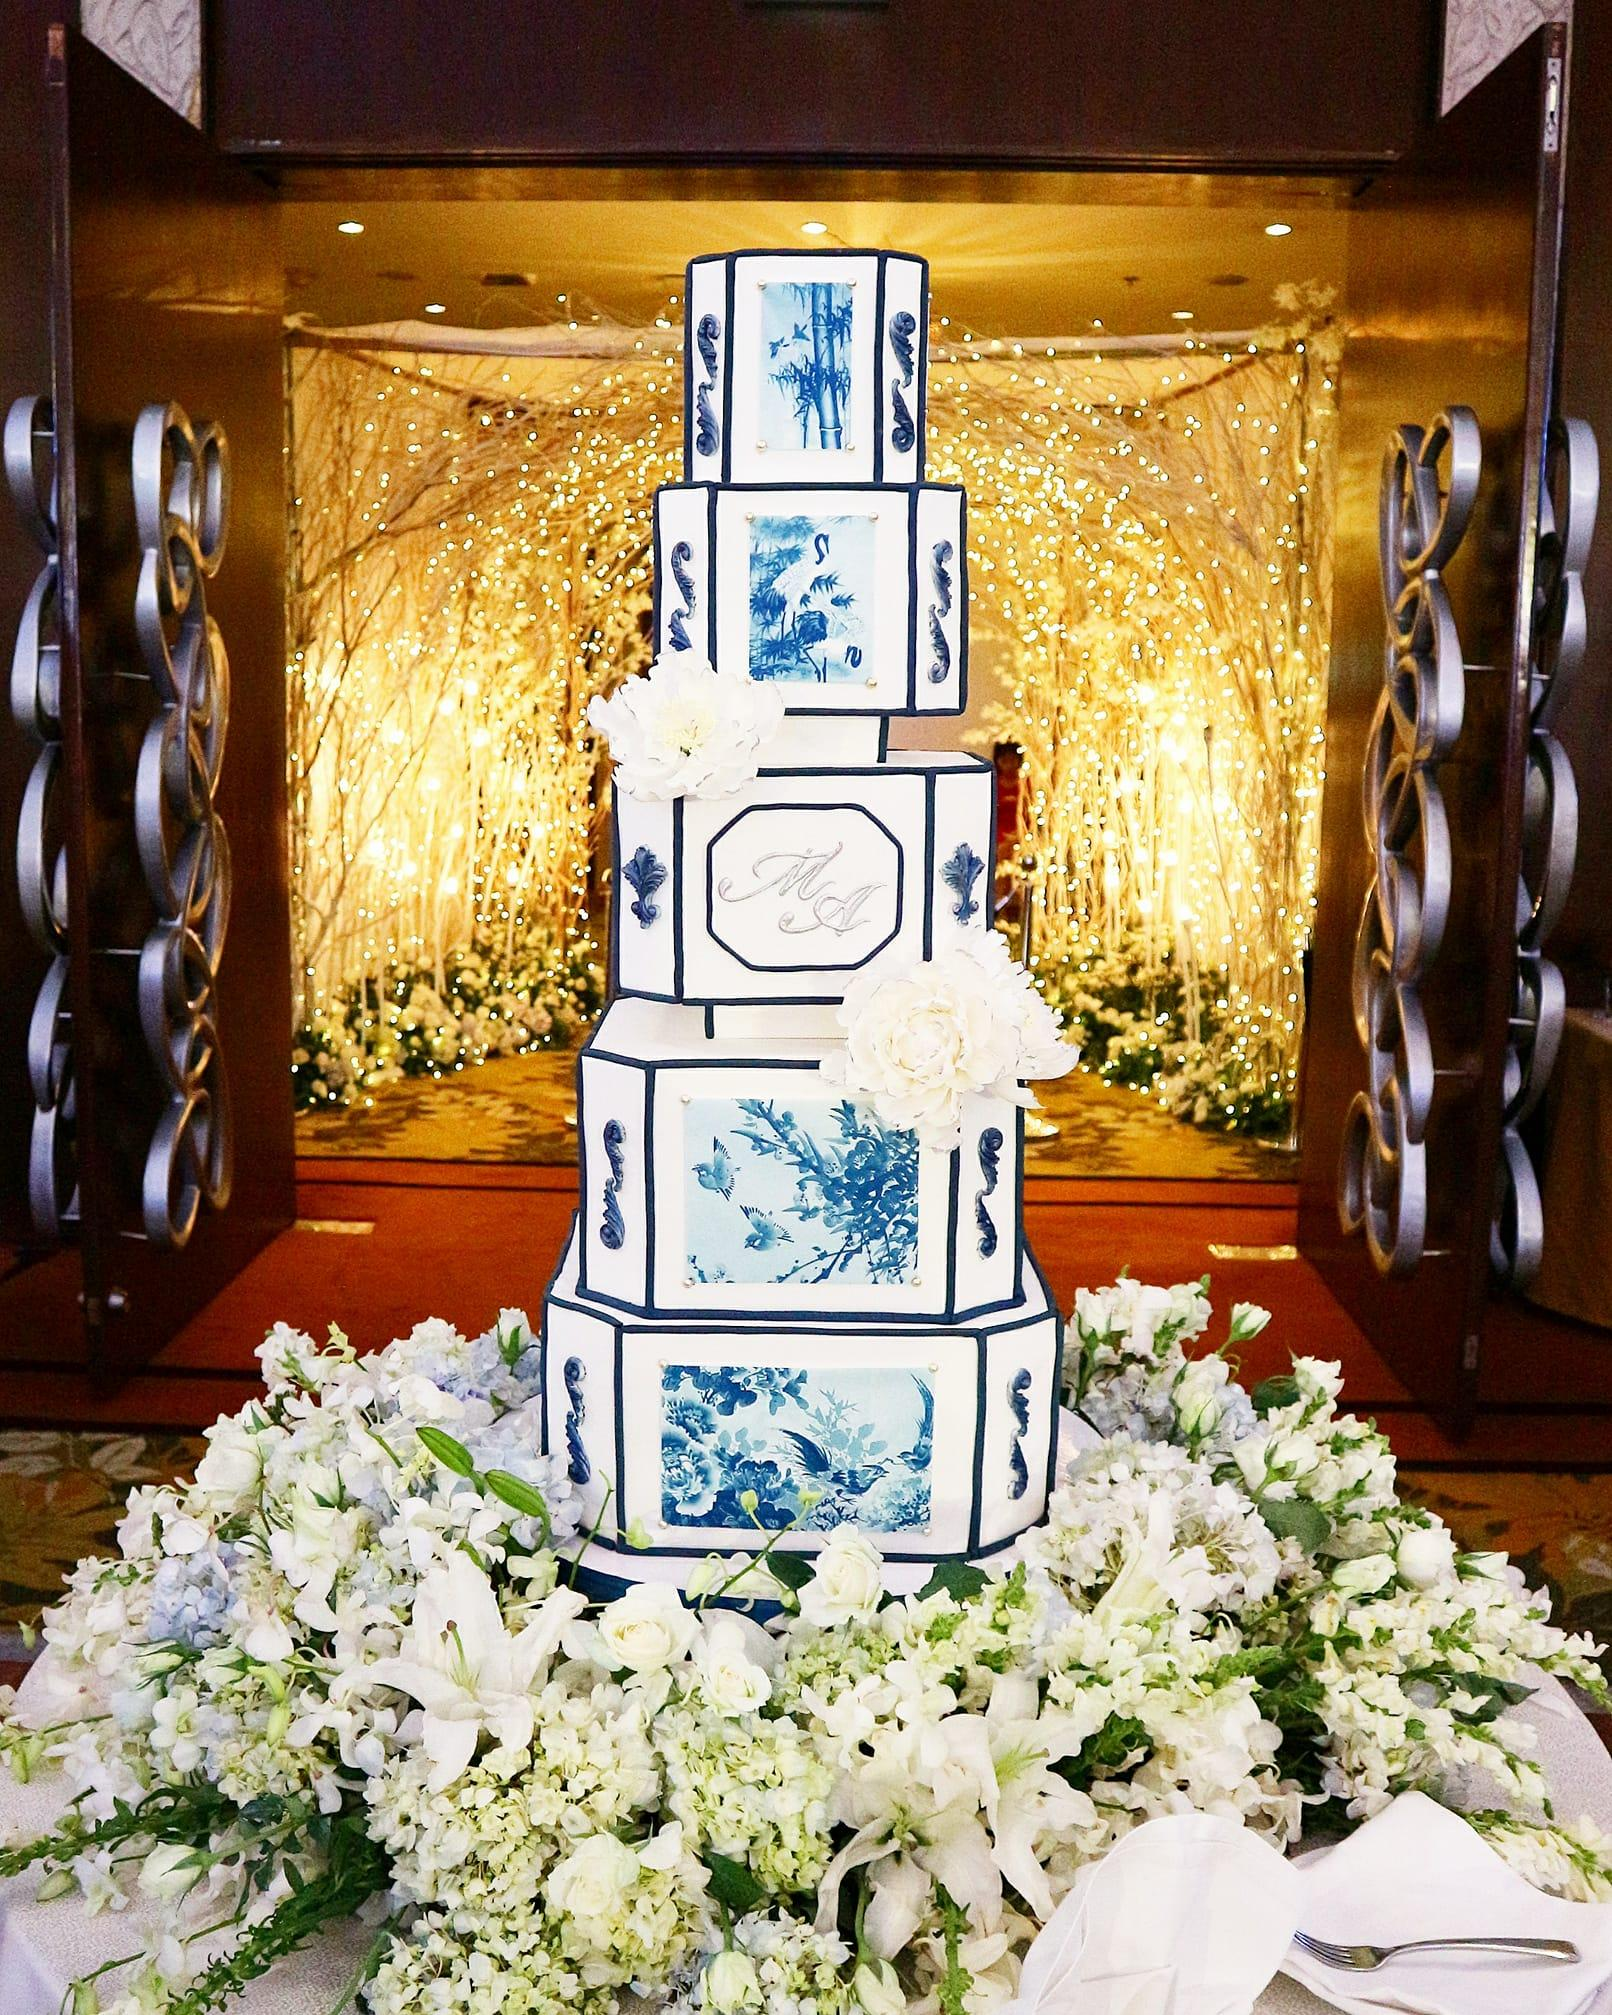 White wedding cake with hand painted blue landscapes